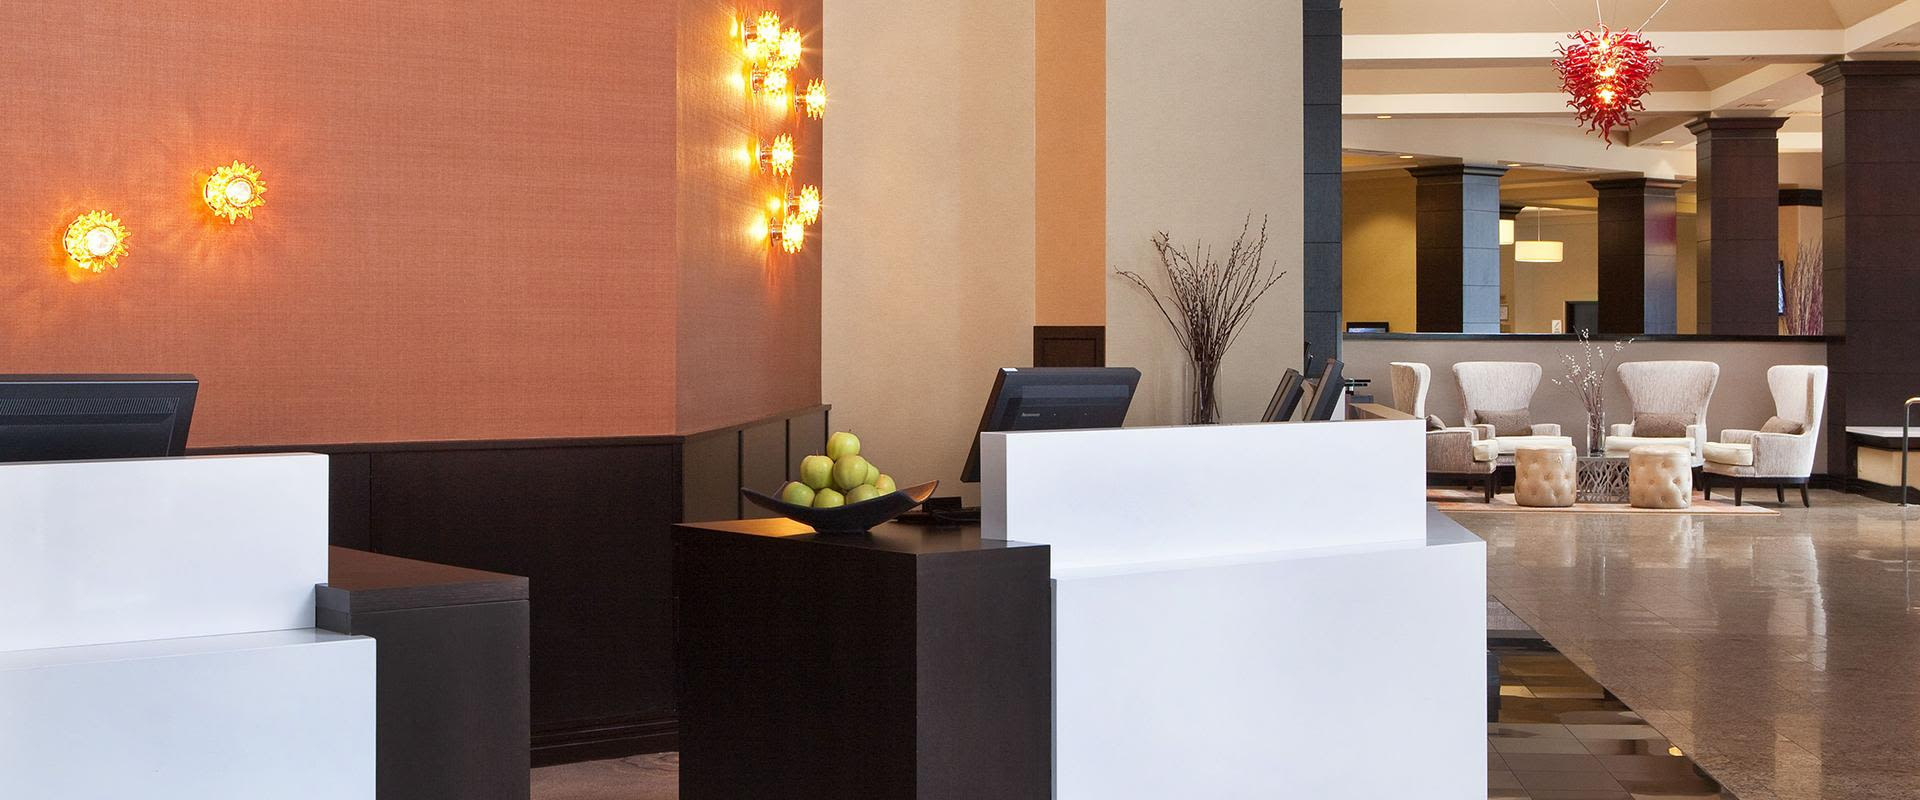 White Plains Hotel Lobby Reception Area